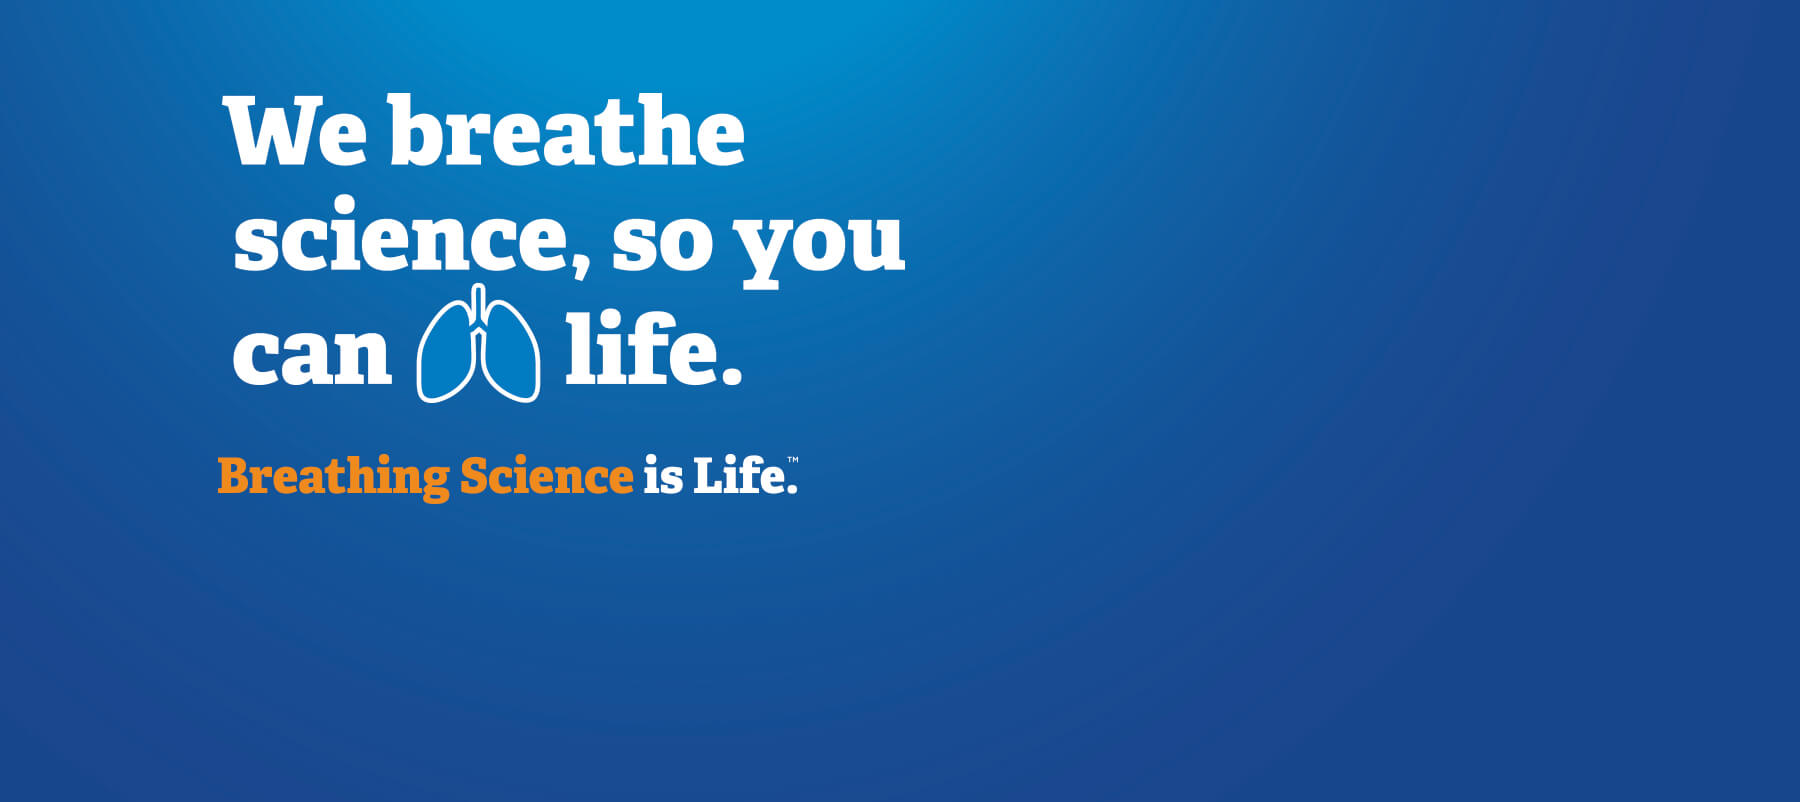 Breathing Science is Life<sup>™</sup>